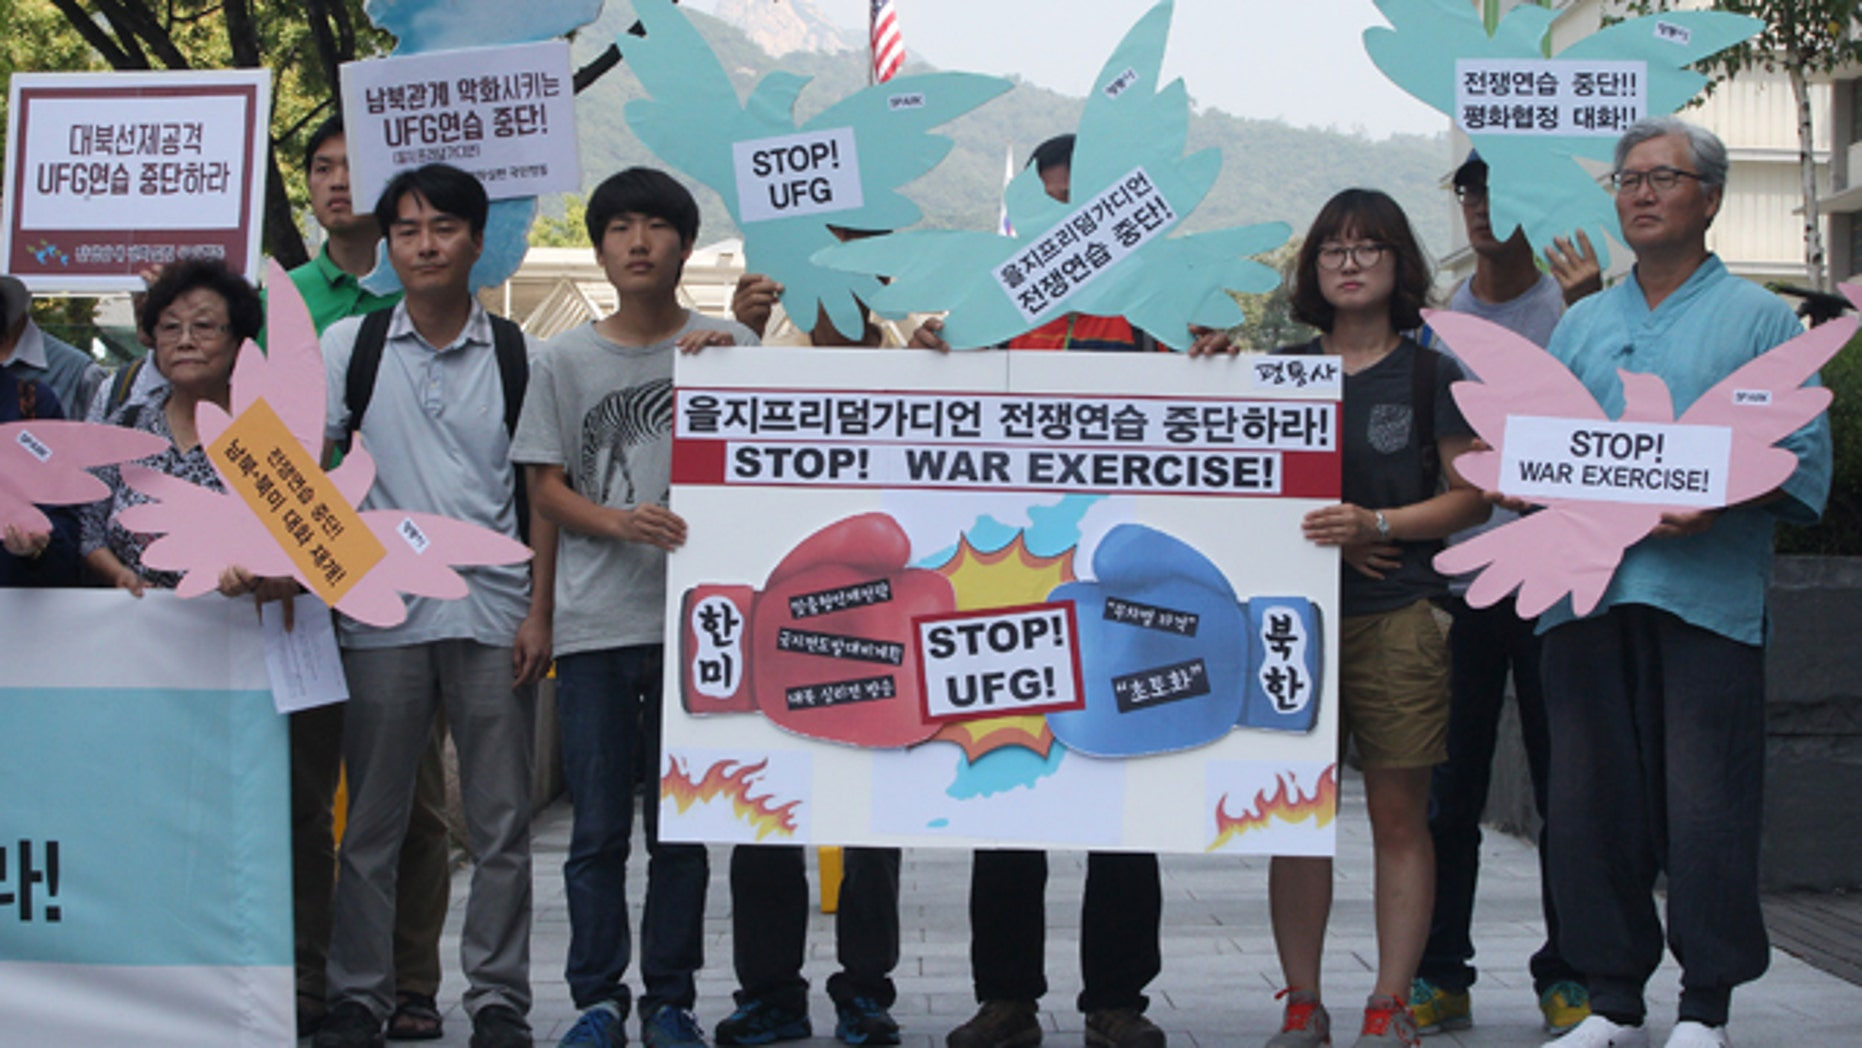 Aug. 17, 2015: South Korean protesters stage a rally demanding to stop the joint military exercises, Ulchi Freedom Guardian or UFG, between the U.S. and South Korea near the U.S. Embassy in Seoul, South Korea, The banner at center, reads 'Stop Ulchi Freedom Guardian exercise.' (AP Photo/Ahn Young-joon)